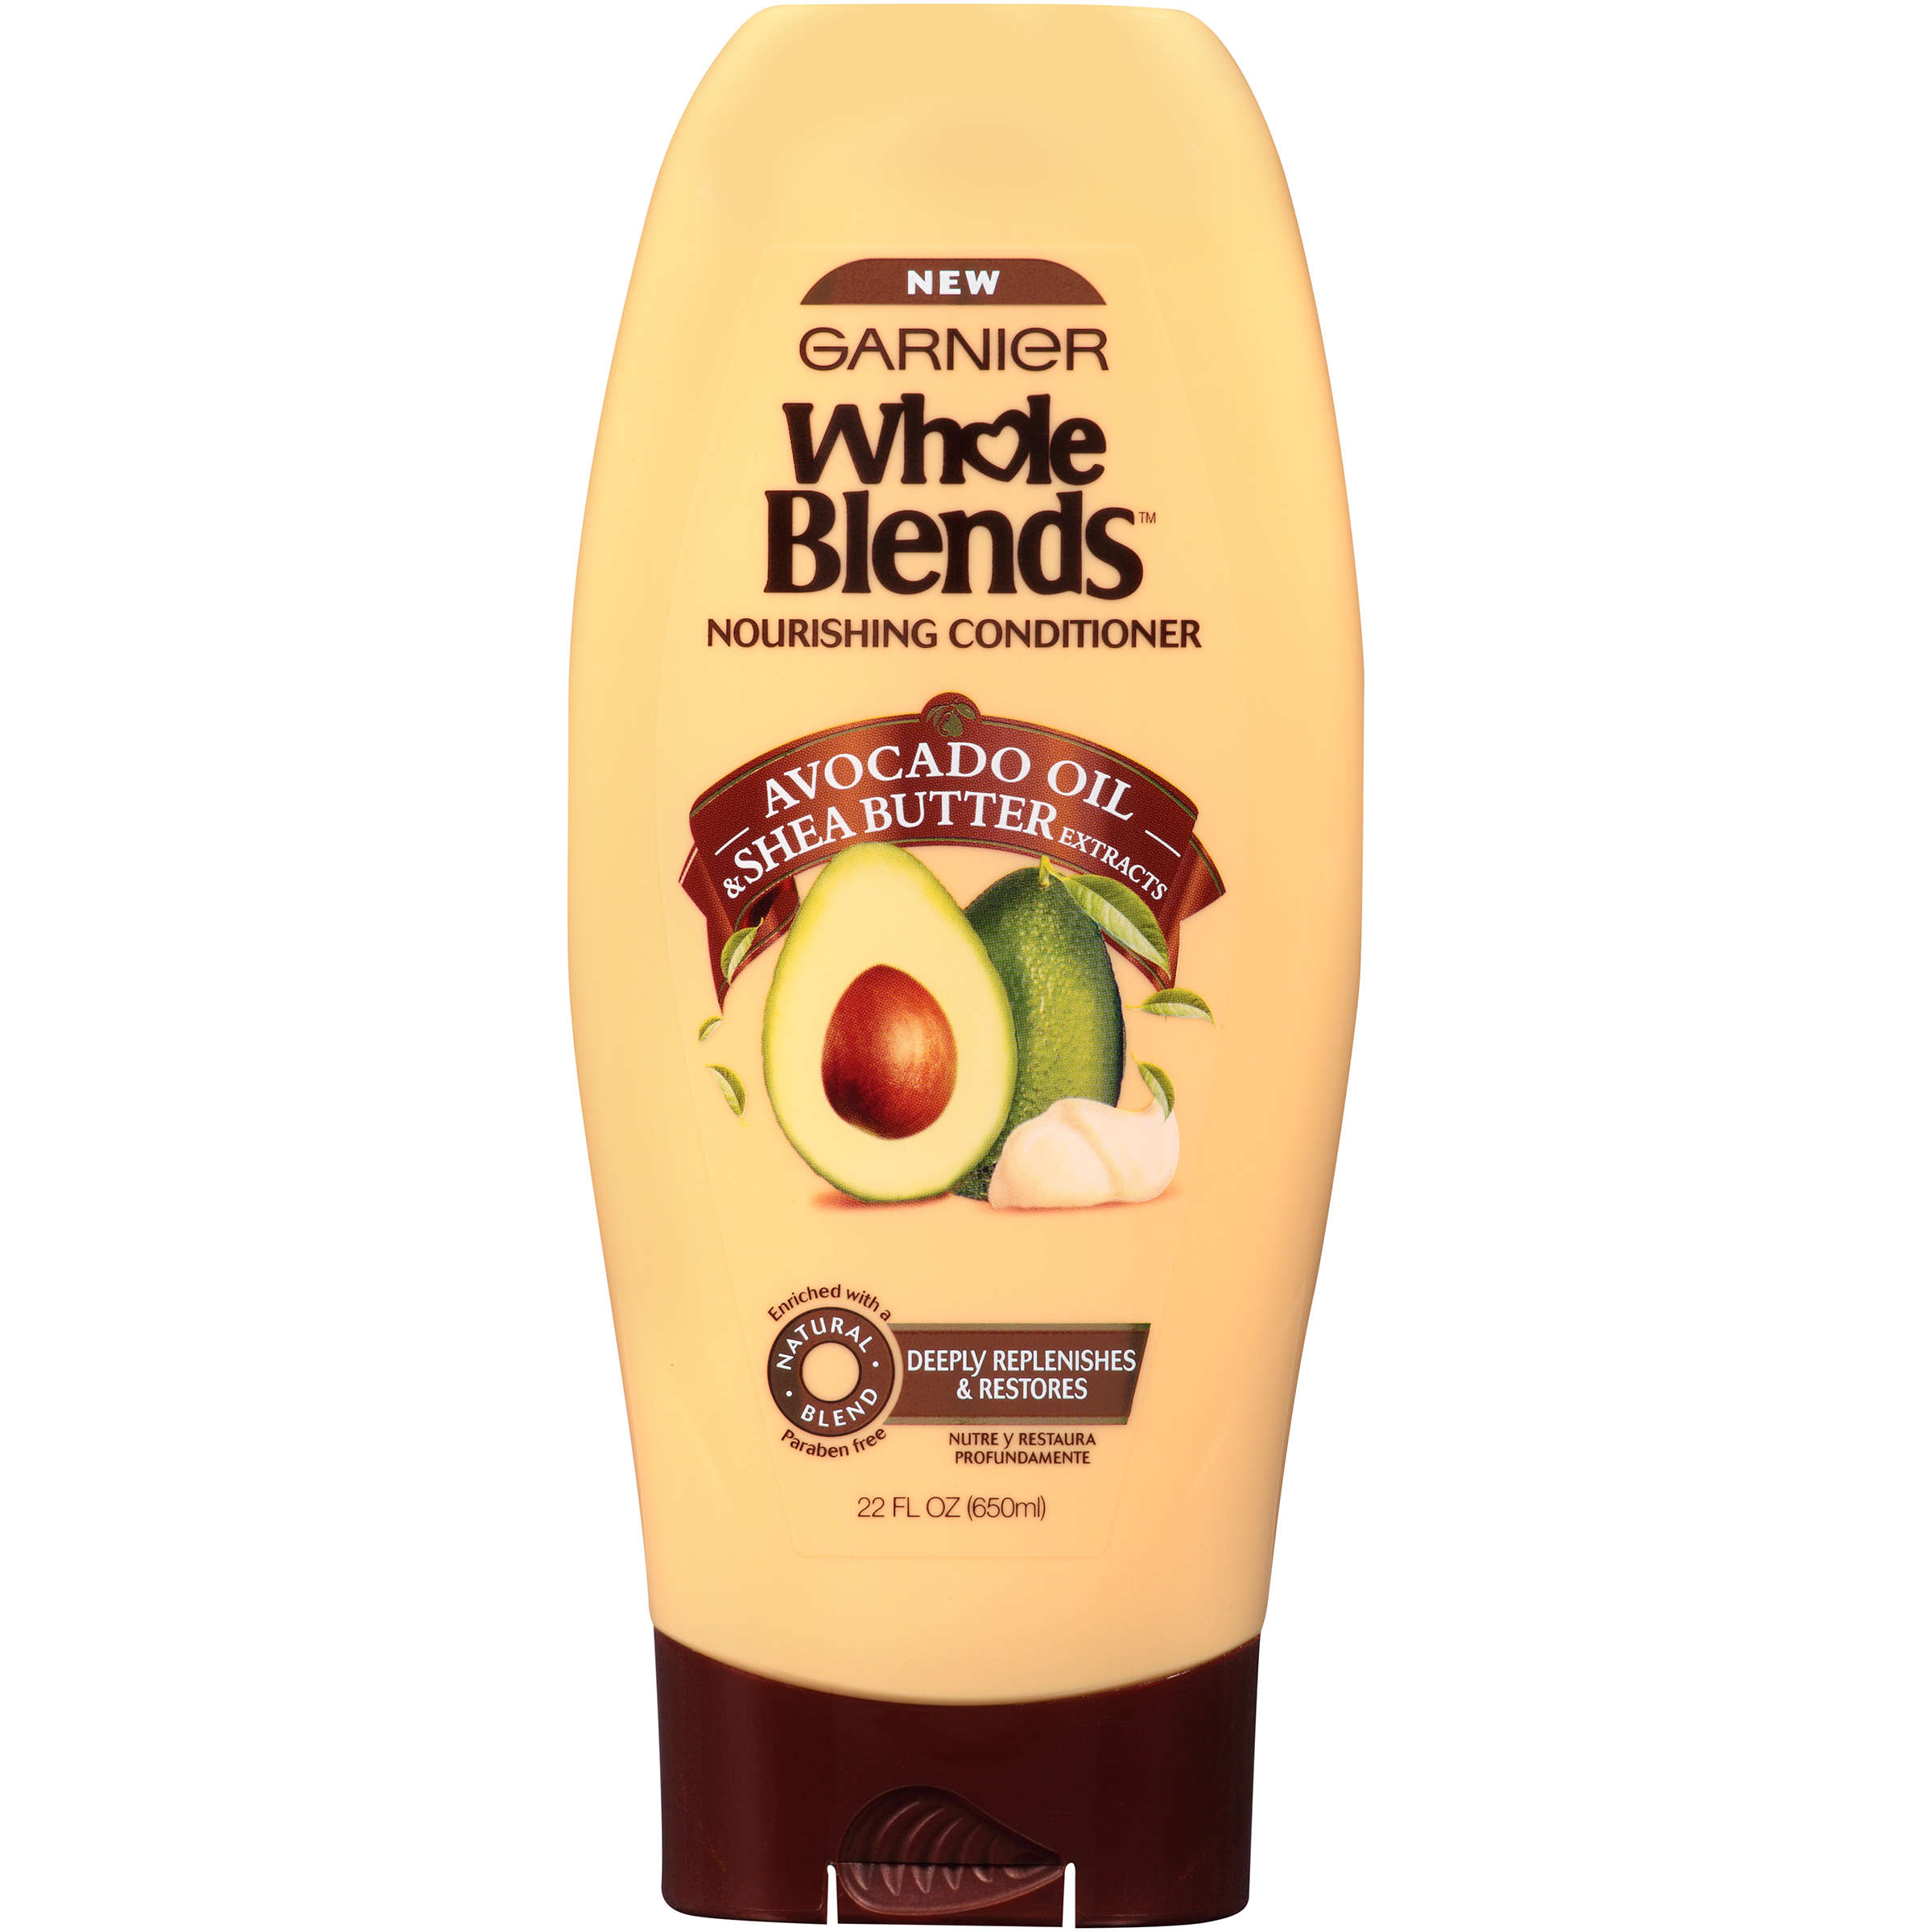 Garnier Whole Blends Conditioner with Avocado Oil & Shea Butter Extracts 22 FL OZ